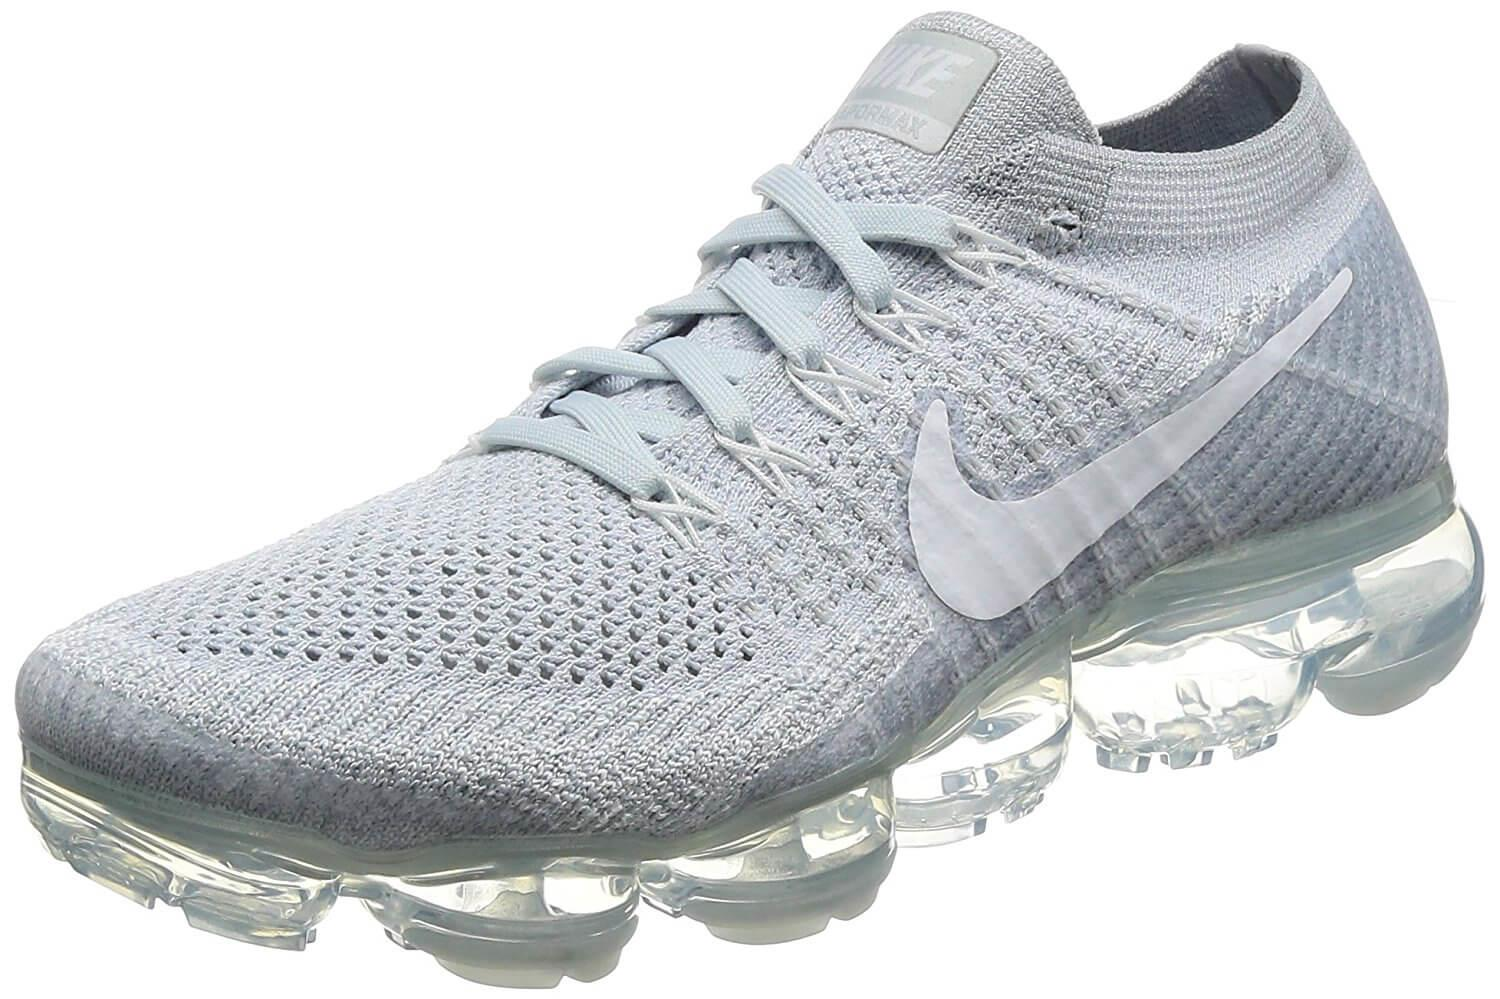 sale retailer fa903 bcf76 Nike Air Vapormax Flyknit - To Buy or Not in May 2019